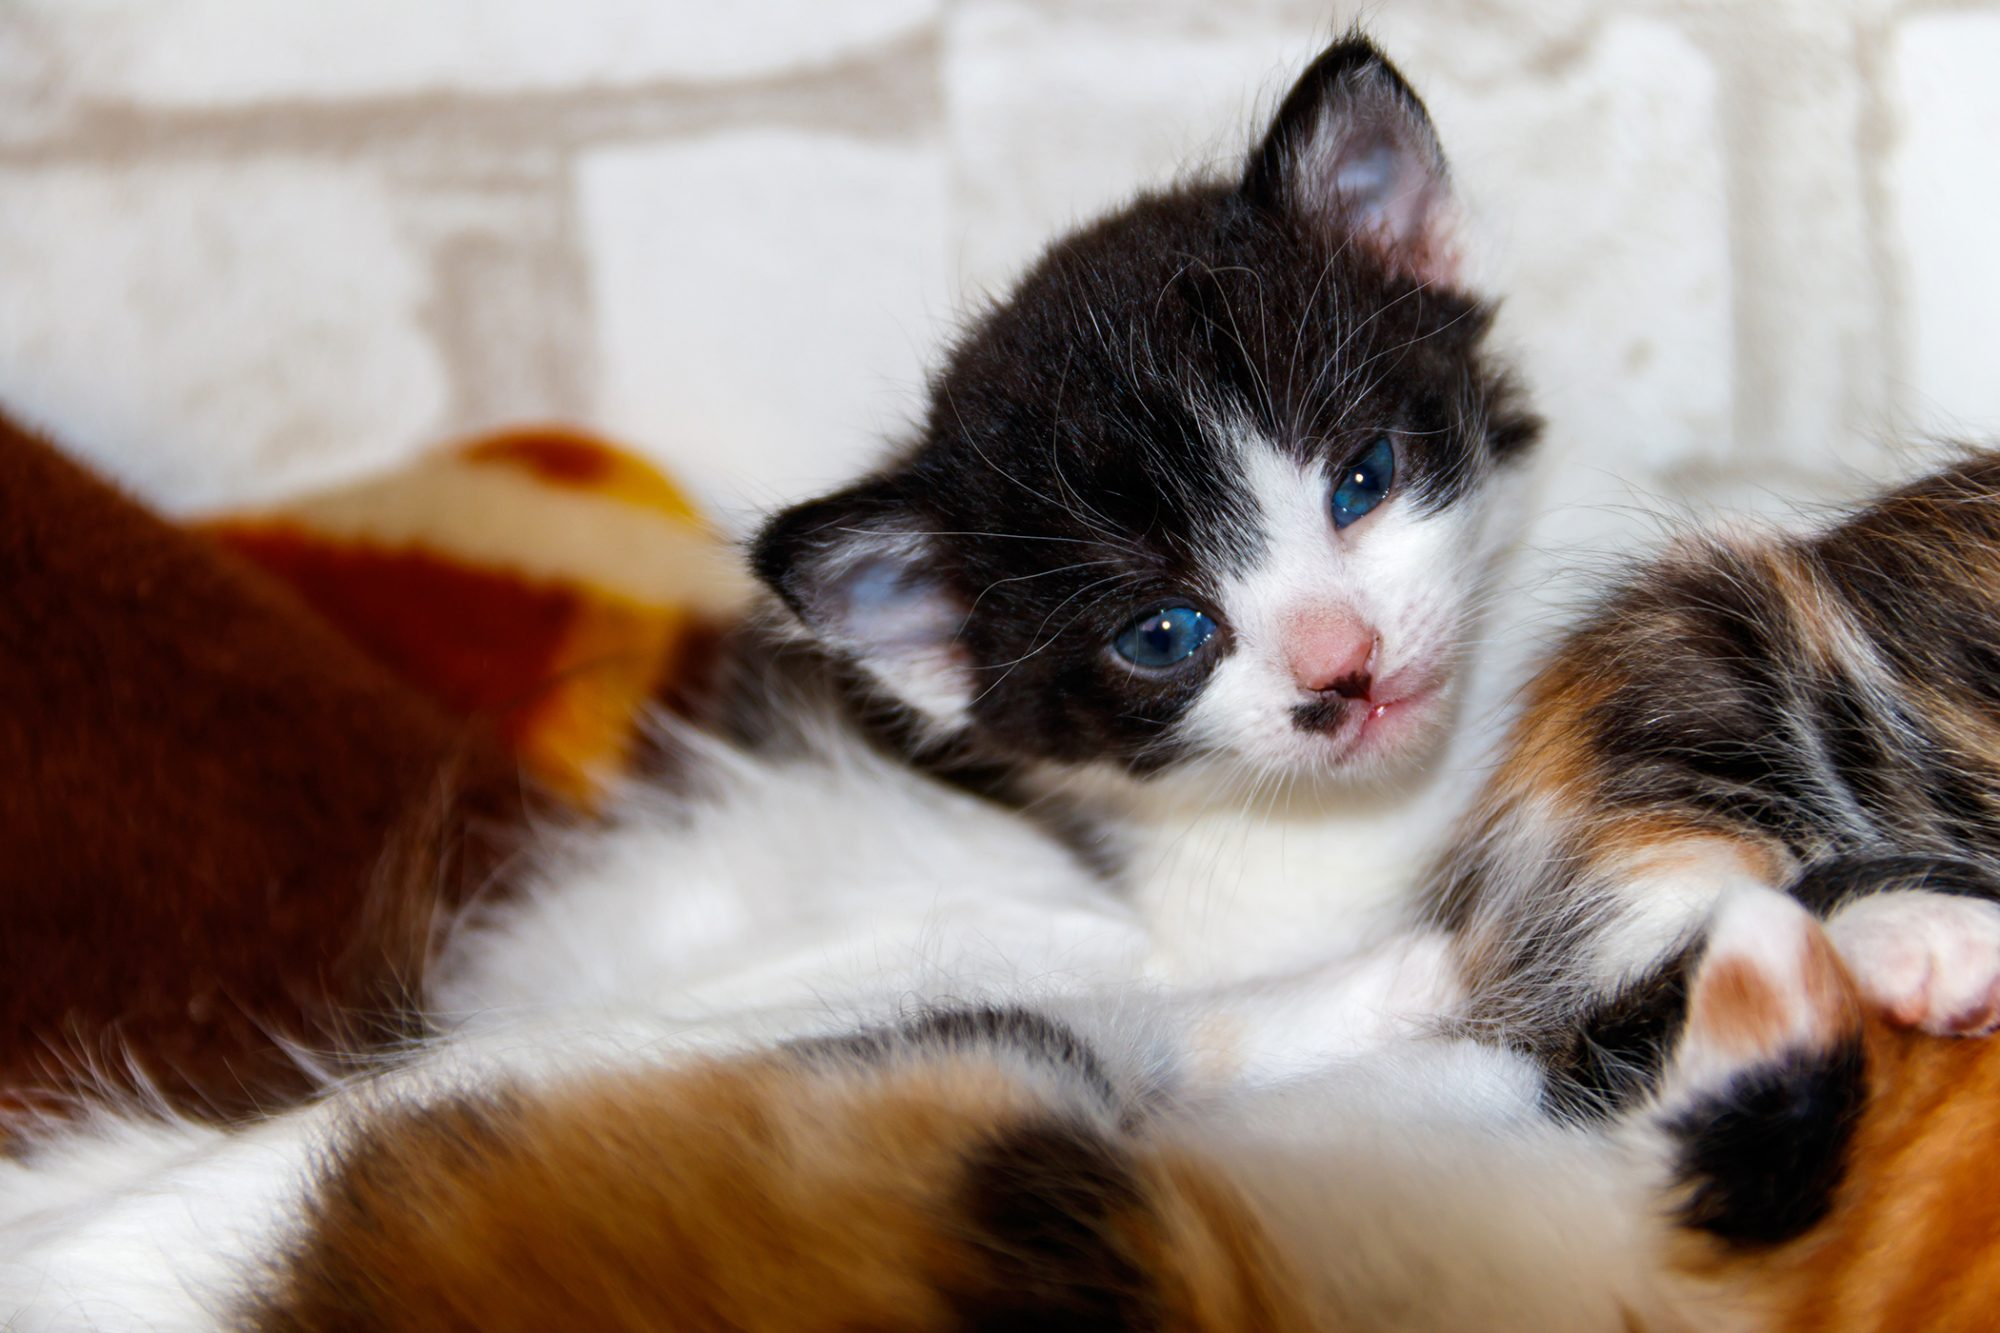 ten to fourteen-day-old kitten snuggling with his litter